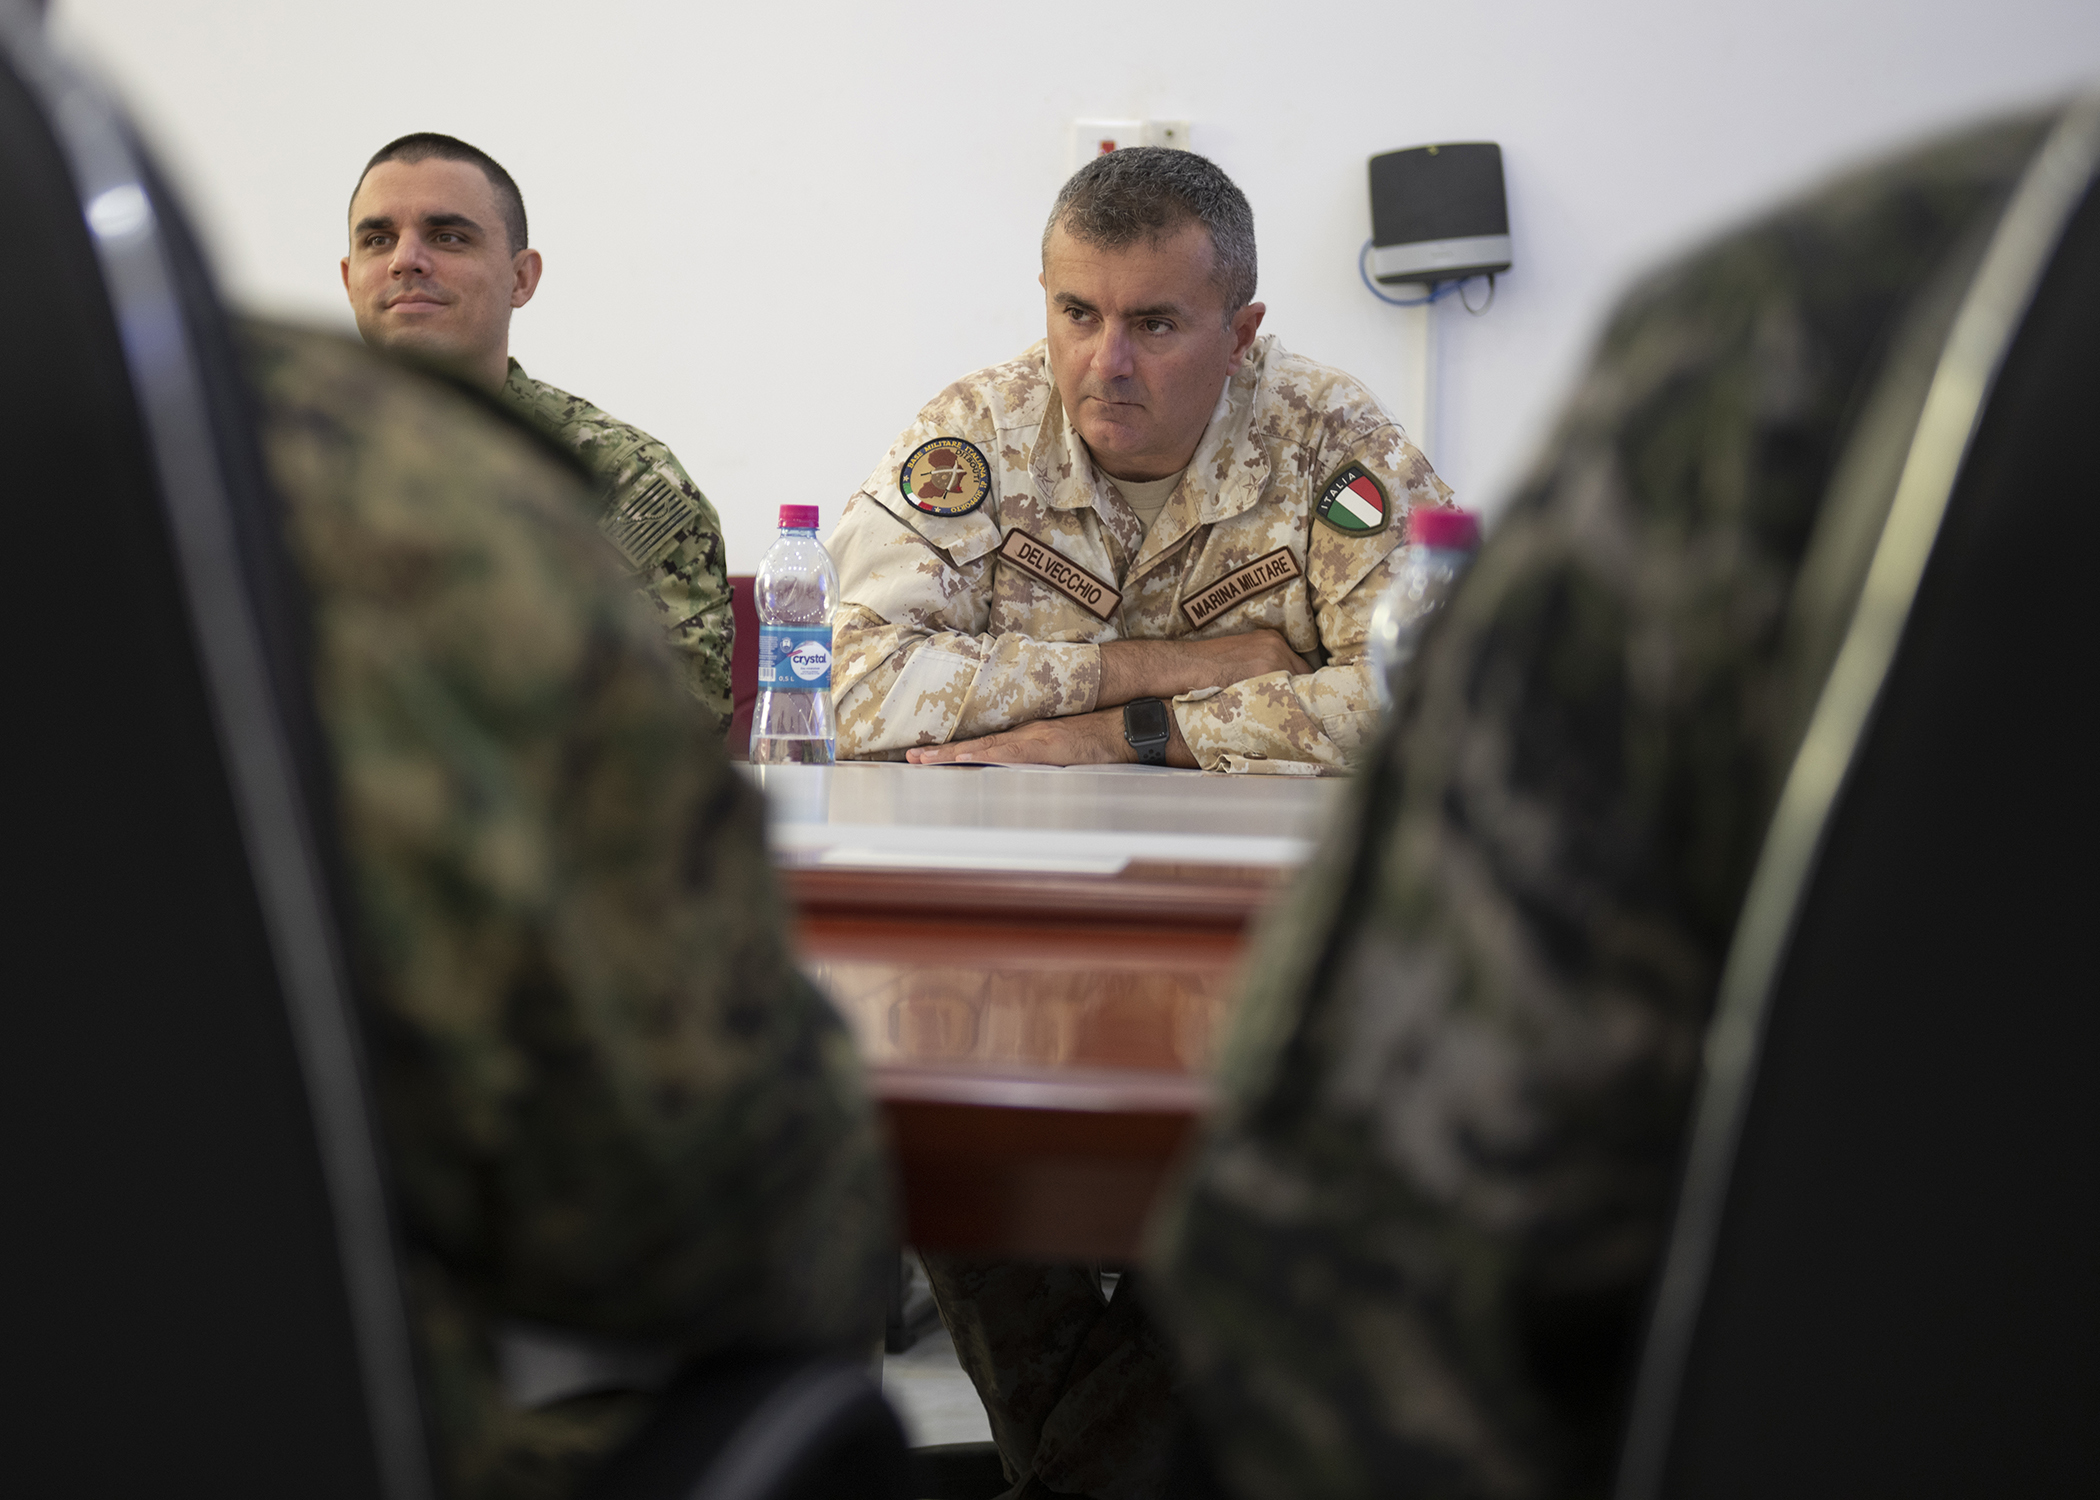 Italian Marina Militare Lt. Col. Alex Delecchio, a foreign liaison officer (FLO) assigned to Combined Joint Task Force-Horn of Africa (CJTF-HOA), listens during the first-ever formal meeting between FLOs and U.S. military members assigned to CJTF-HOA, and officials from the Intergovernmental Authority on Development in Djibouti, Jan. 16, 2019. The purpose of the meeting was for both parties to familiarize themselves with each other's missions and goals through a short information exchange and set the stance for future meetings. (U.S. Air Force photo by Tech. Sgt. Shawn Nickel)